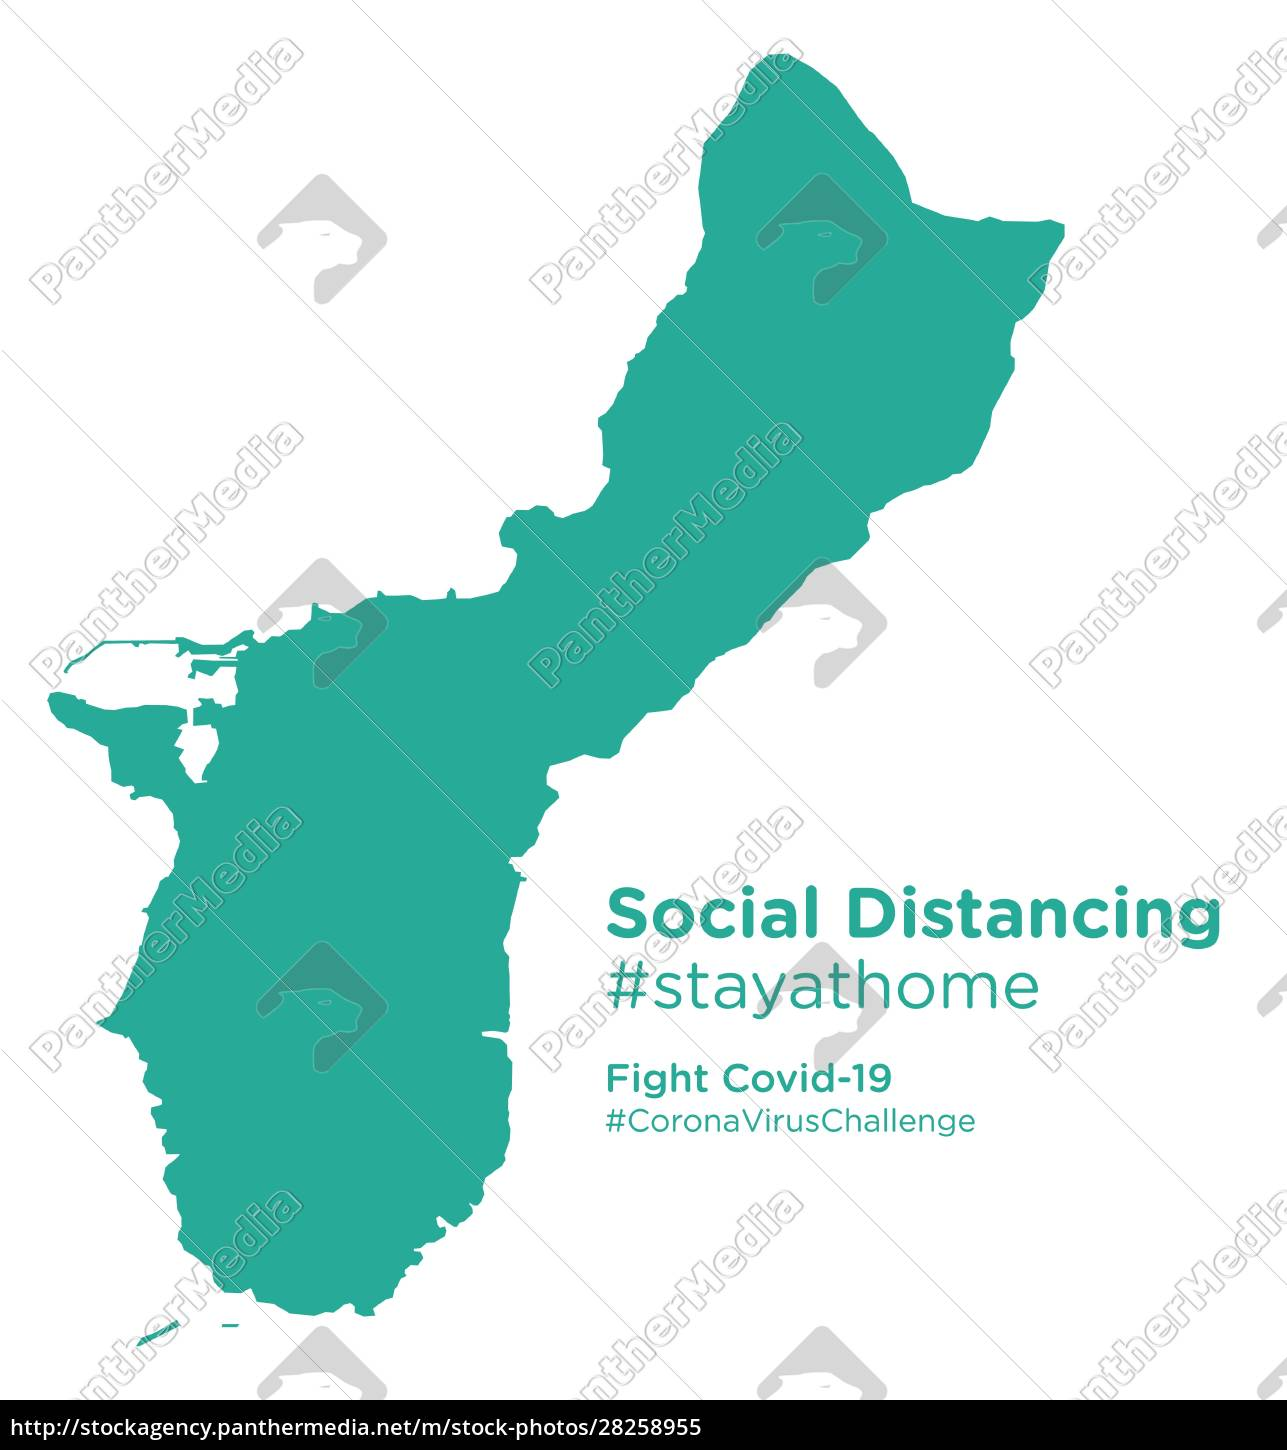 guam, map, with, social, distancing, stayathome - 28258955